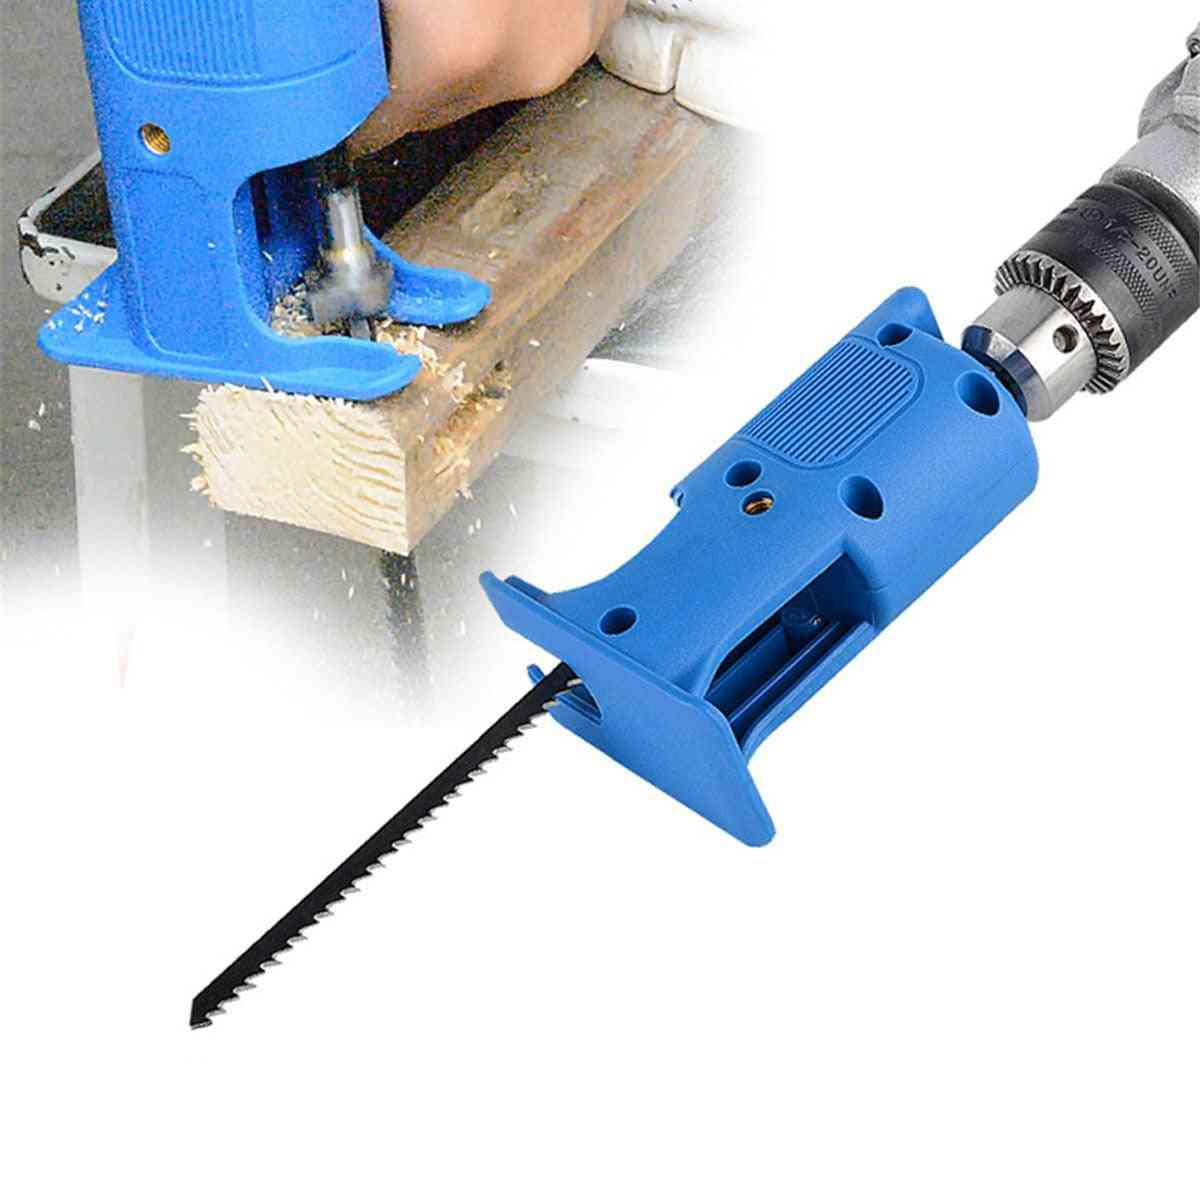 Cordless Reciprocating Saw Adapter Electric Drill